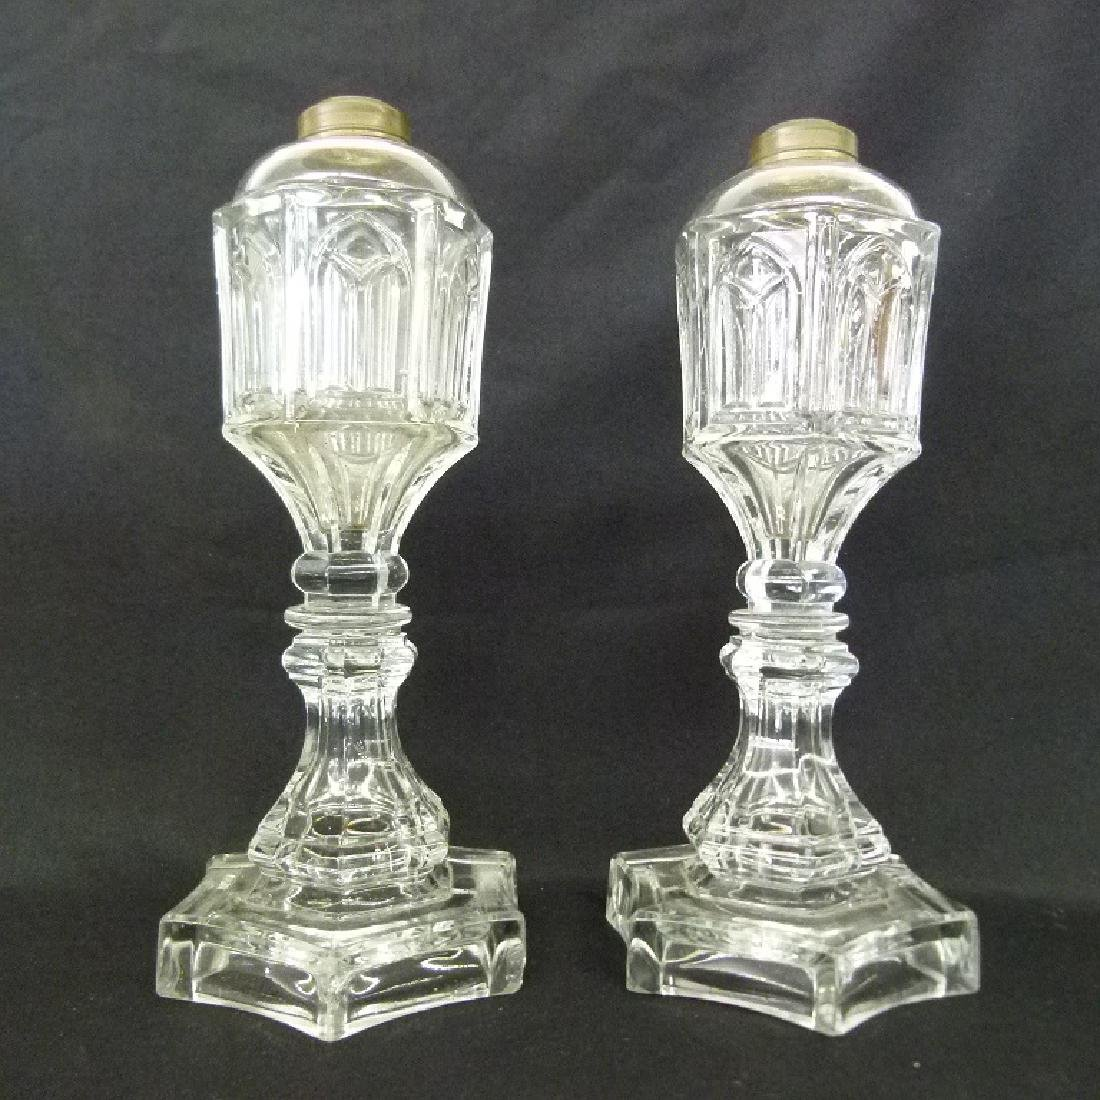 PR. EARLY GOTHIC PATTERN GLASS WHALE OIL LAMPS